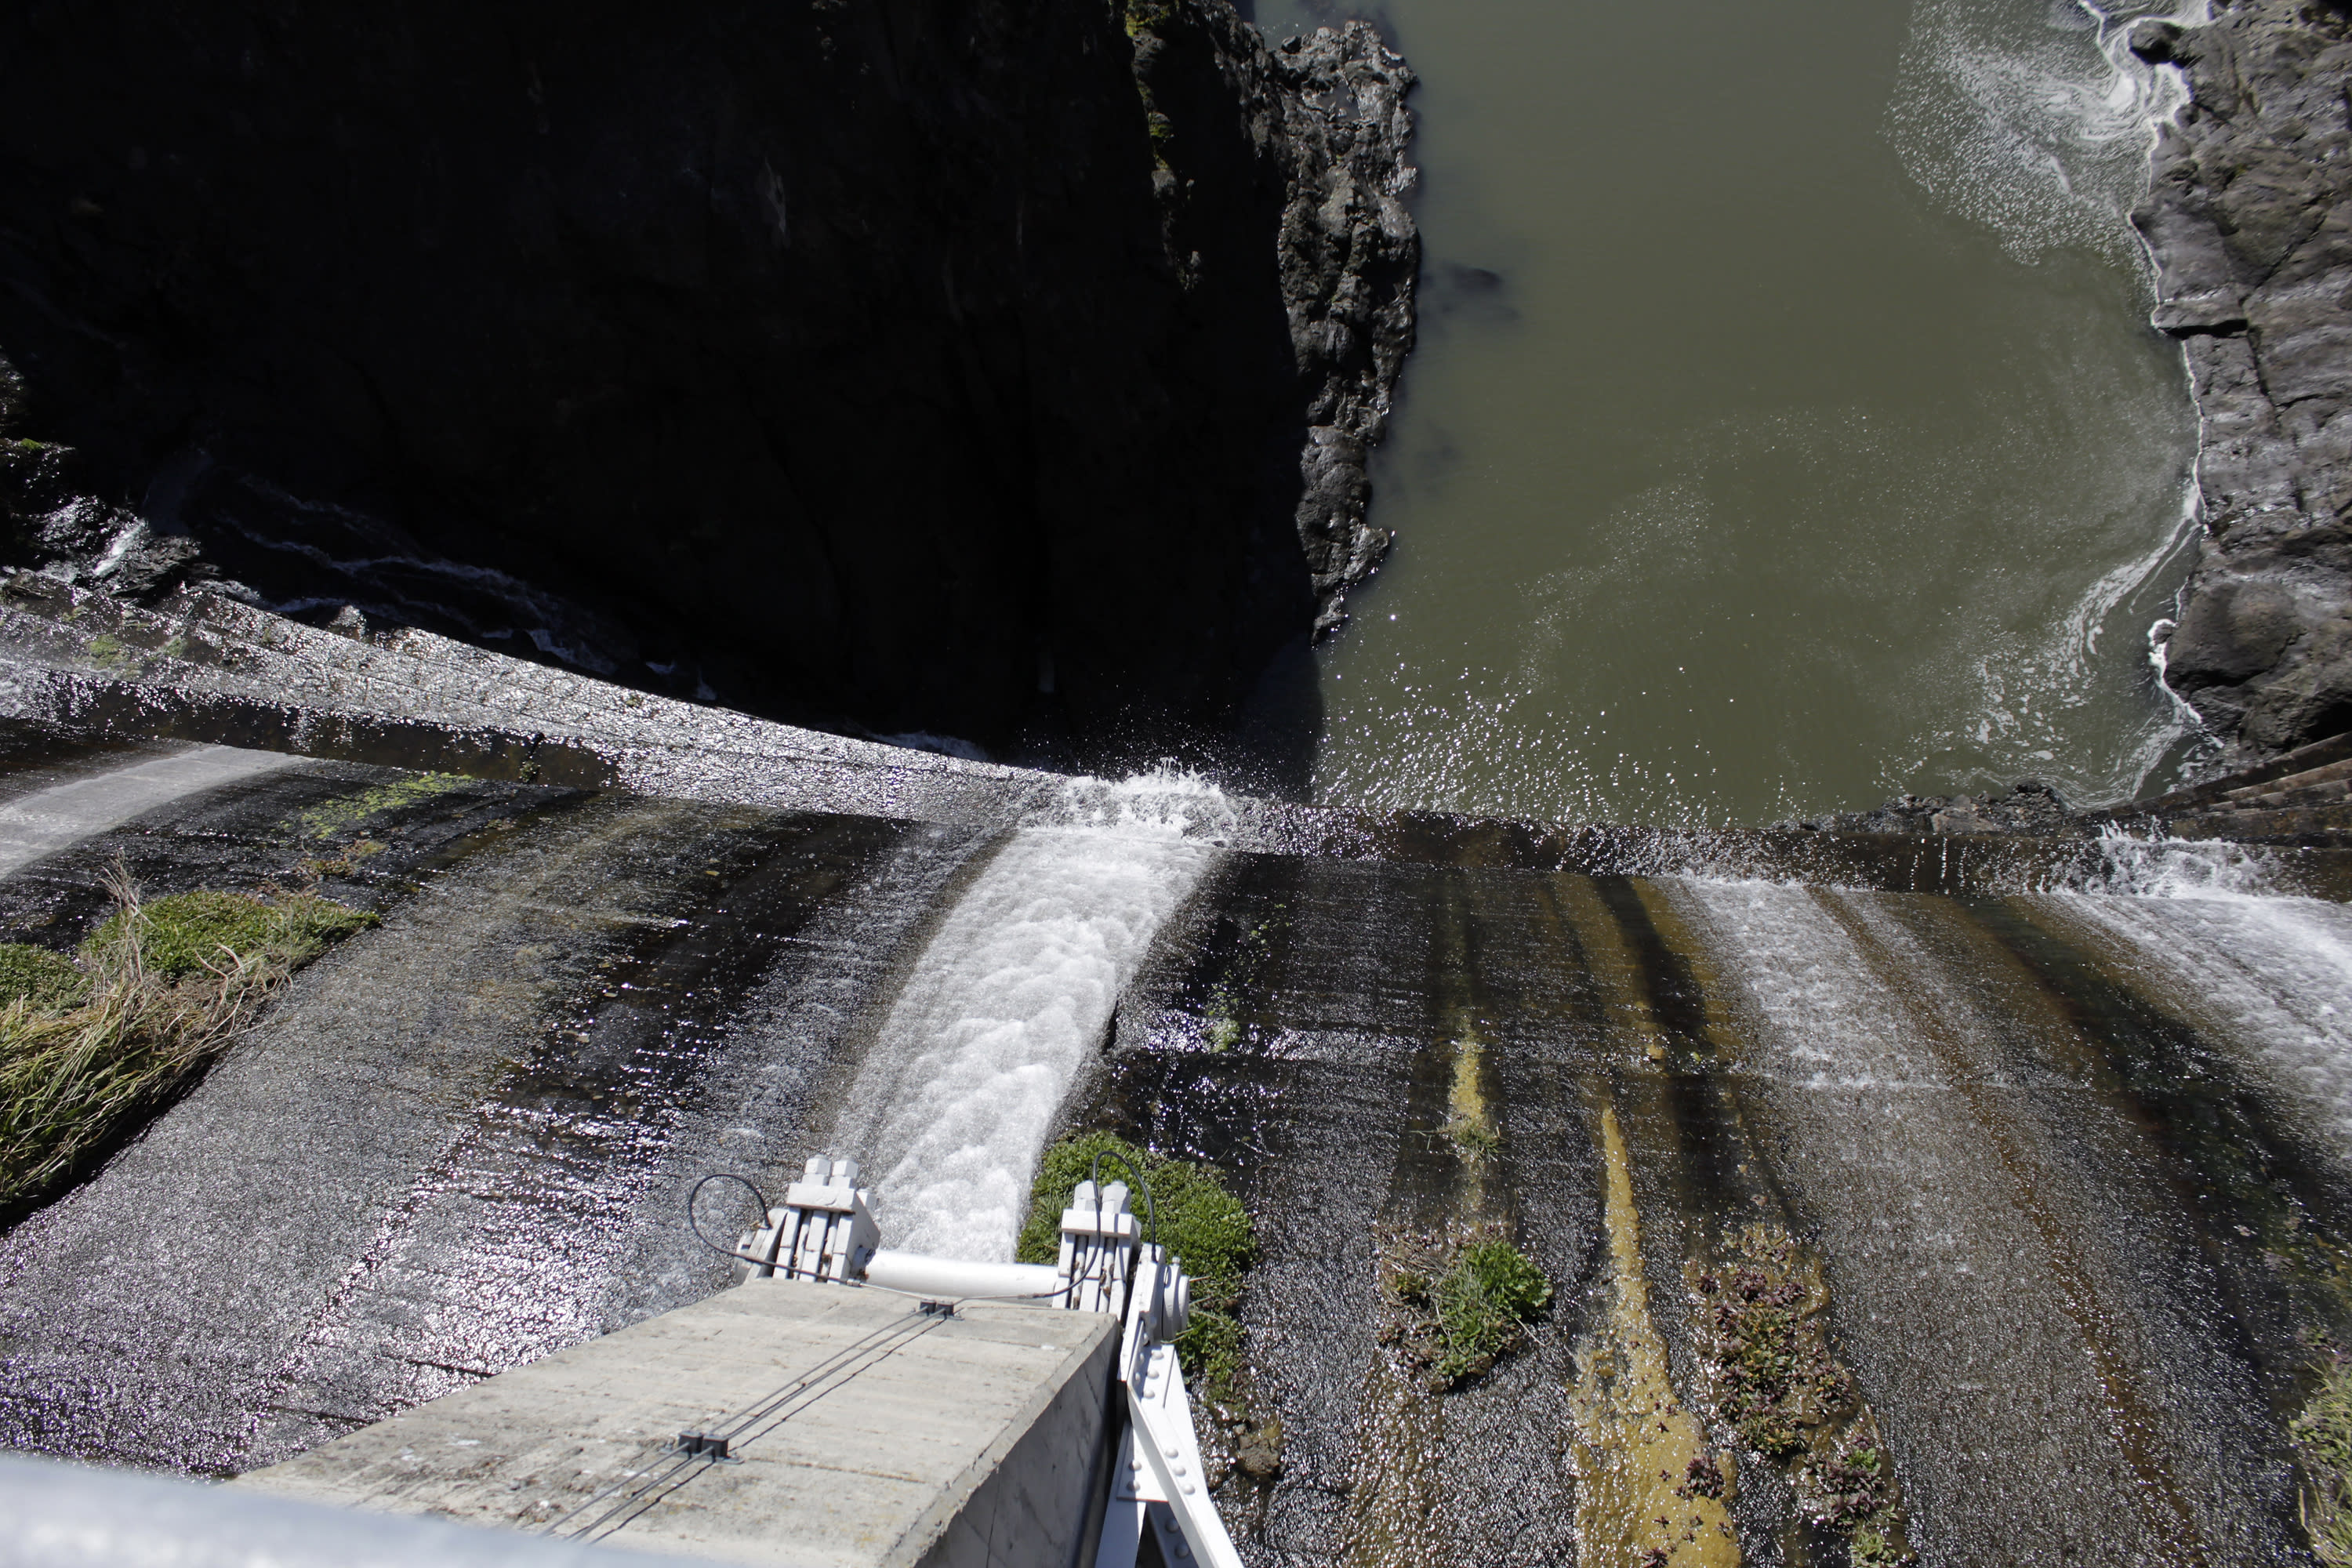 FILE - In this March 3, 2020 file photo, excess water spills over the top of a dam on the lower Klamath River known as Copco 1 near Hornbrook, Calif. A plan to demolish four dams on California's second-largest river to benefit threatened salmon has sharpened a decades-old dispute over who has the biggest claim to the river's life-giving waters. Federal regulators on Thursday, July 16, 2020, threw a significant curveball at a coalition that has been planning for years to demolish four massive hydroelectric dams on a river along the Oregon-California border to save salmon. (AP Photo/Gillian Flaccus, File)